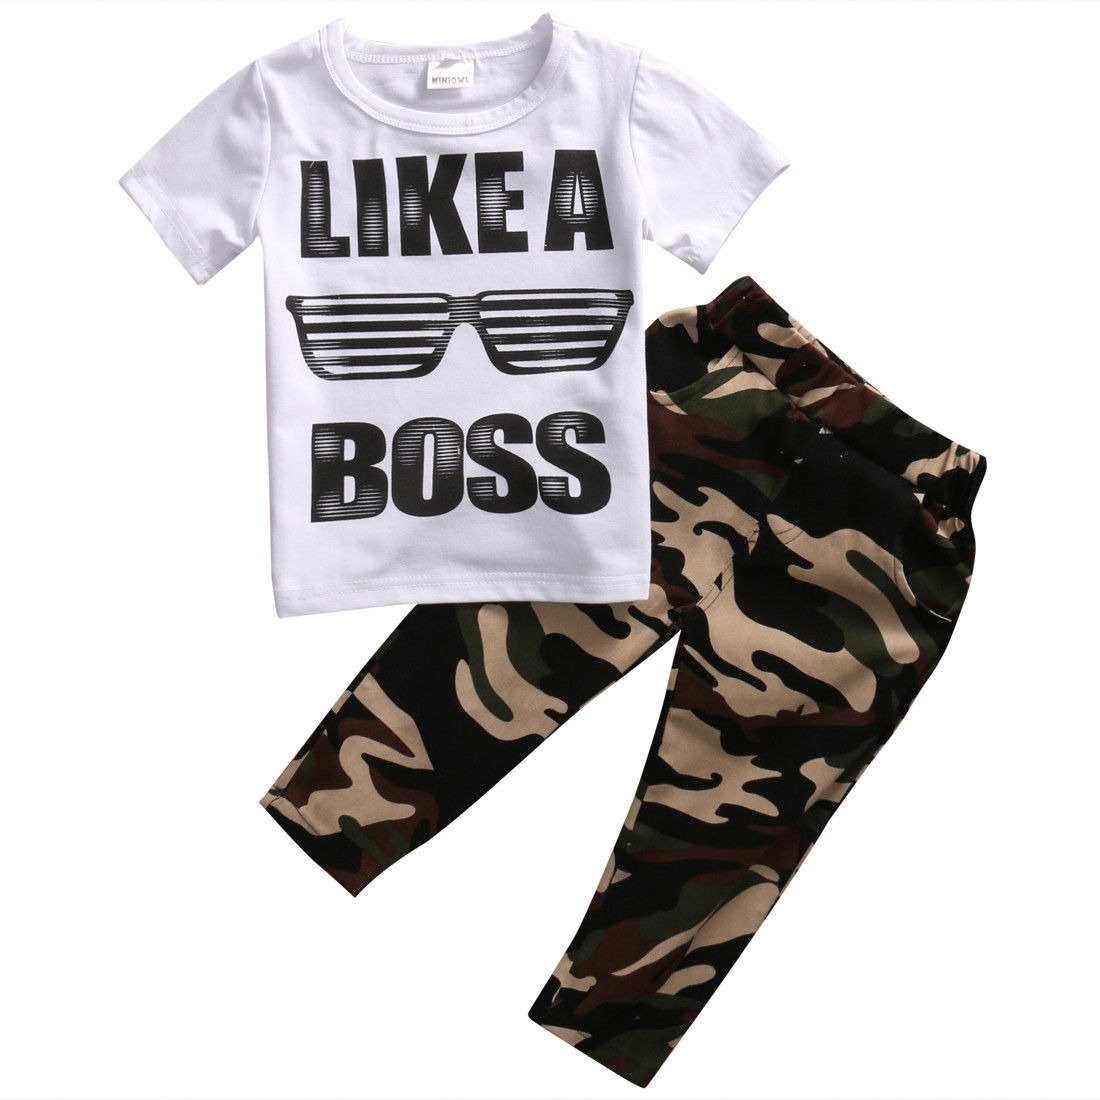 2pcs// Set Newborn Toddler Kids Baby Boys Clothes T-shirt Tops+Camo Pants Outfits